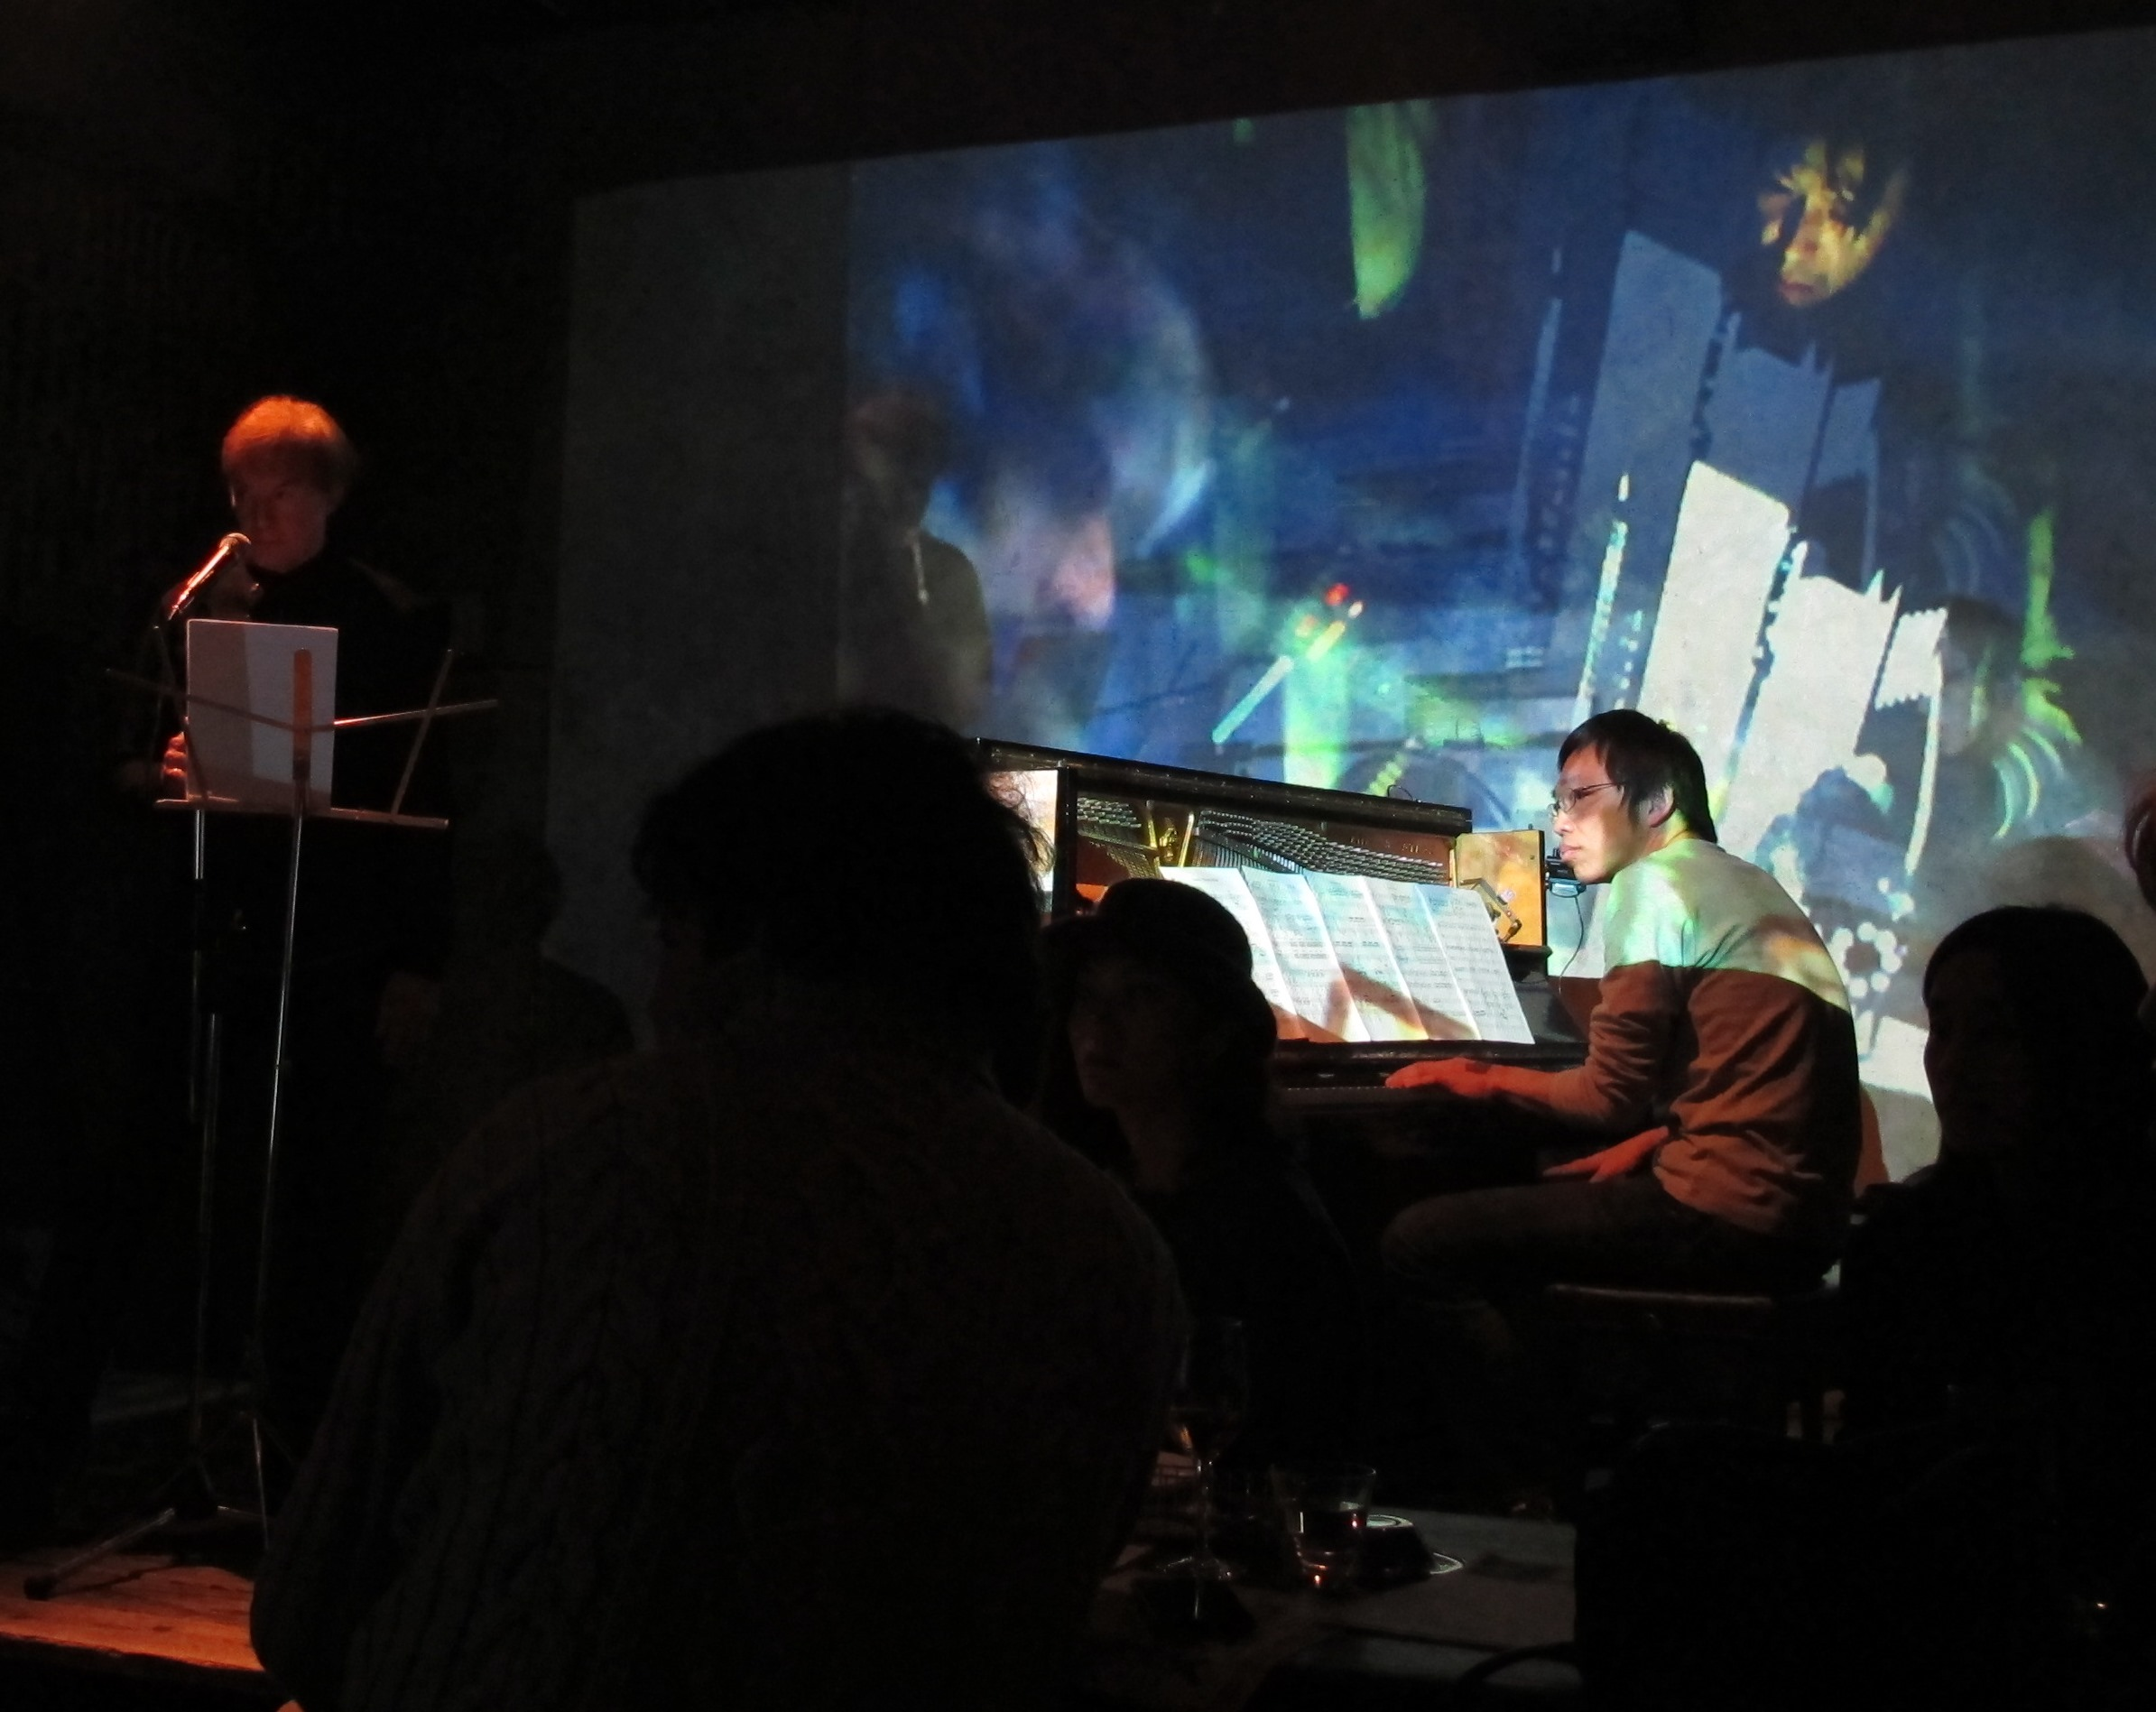 At an Ensō Watt performance there are two screens, one poet, and musicians positioned around the room... The audience is bathed in light and sound.